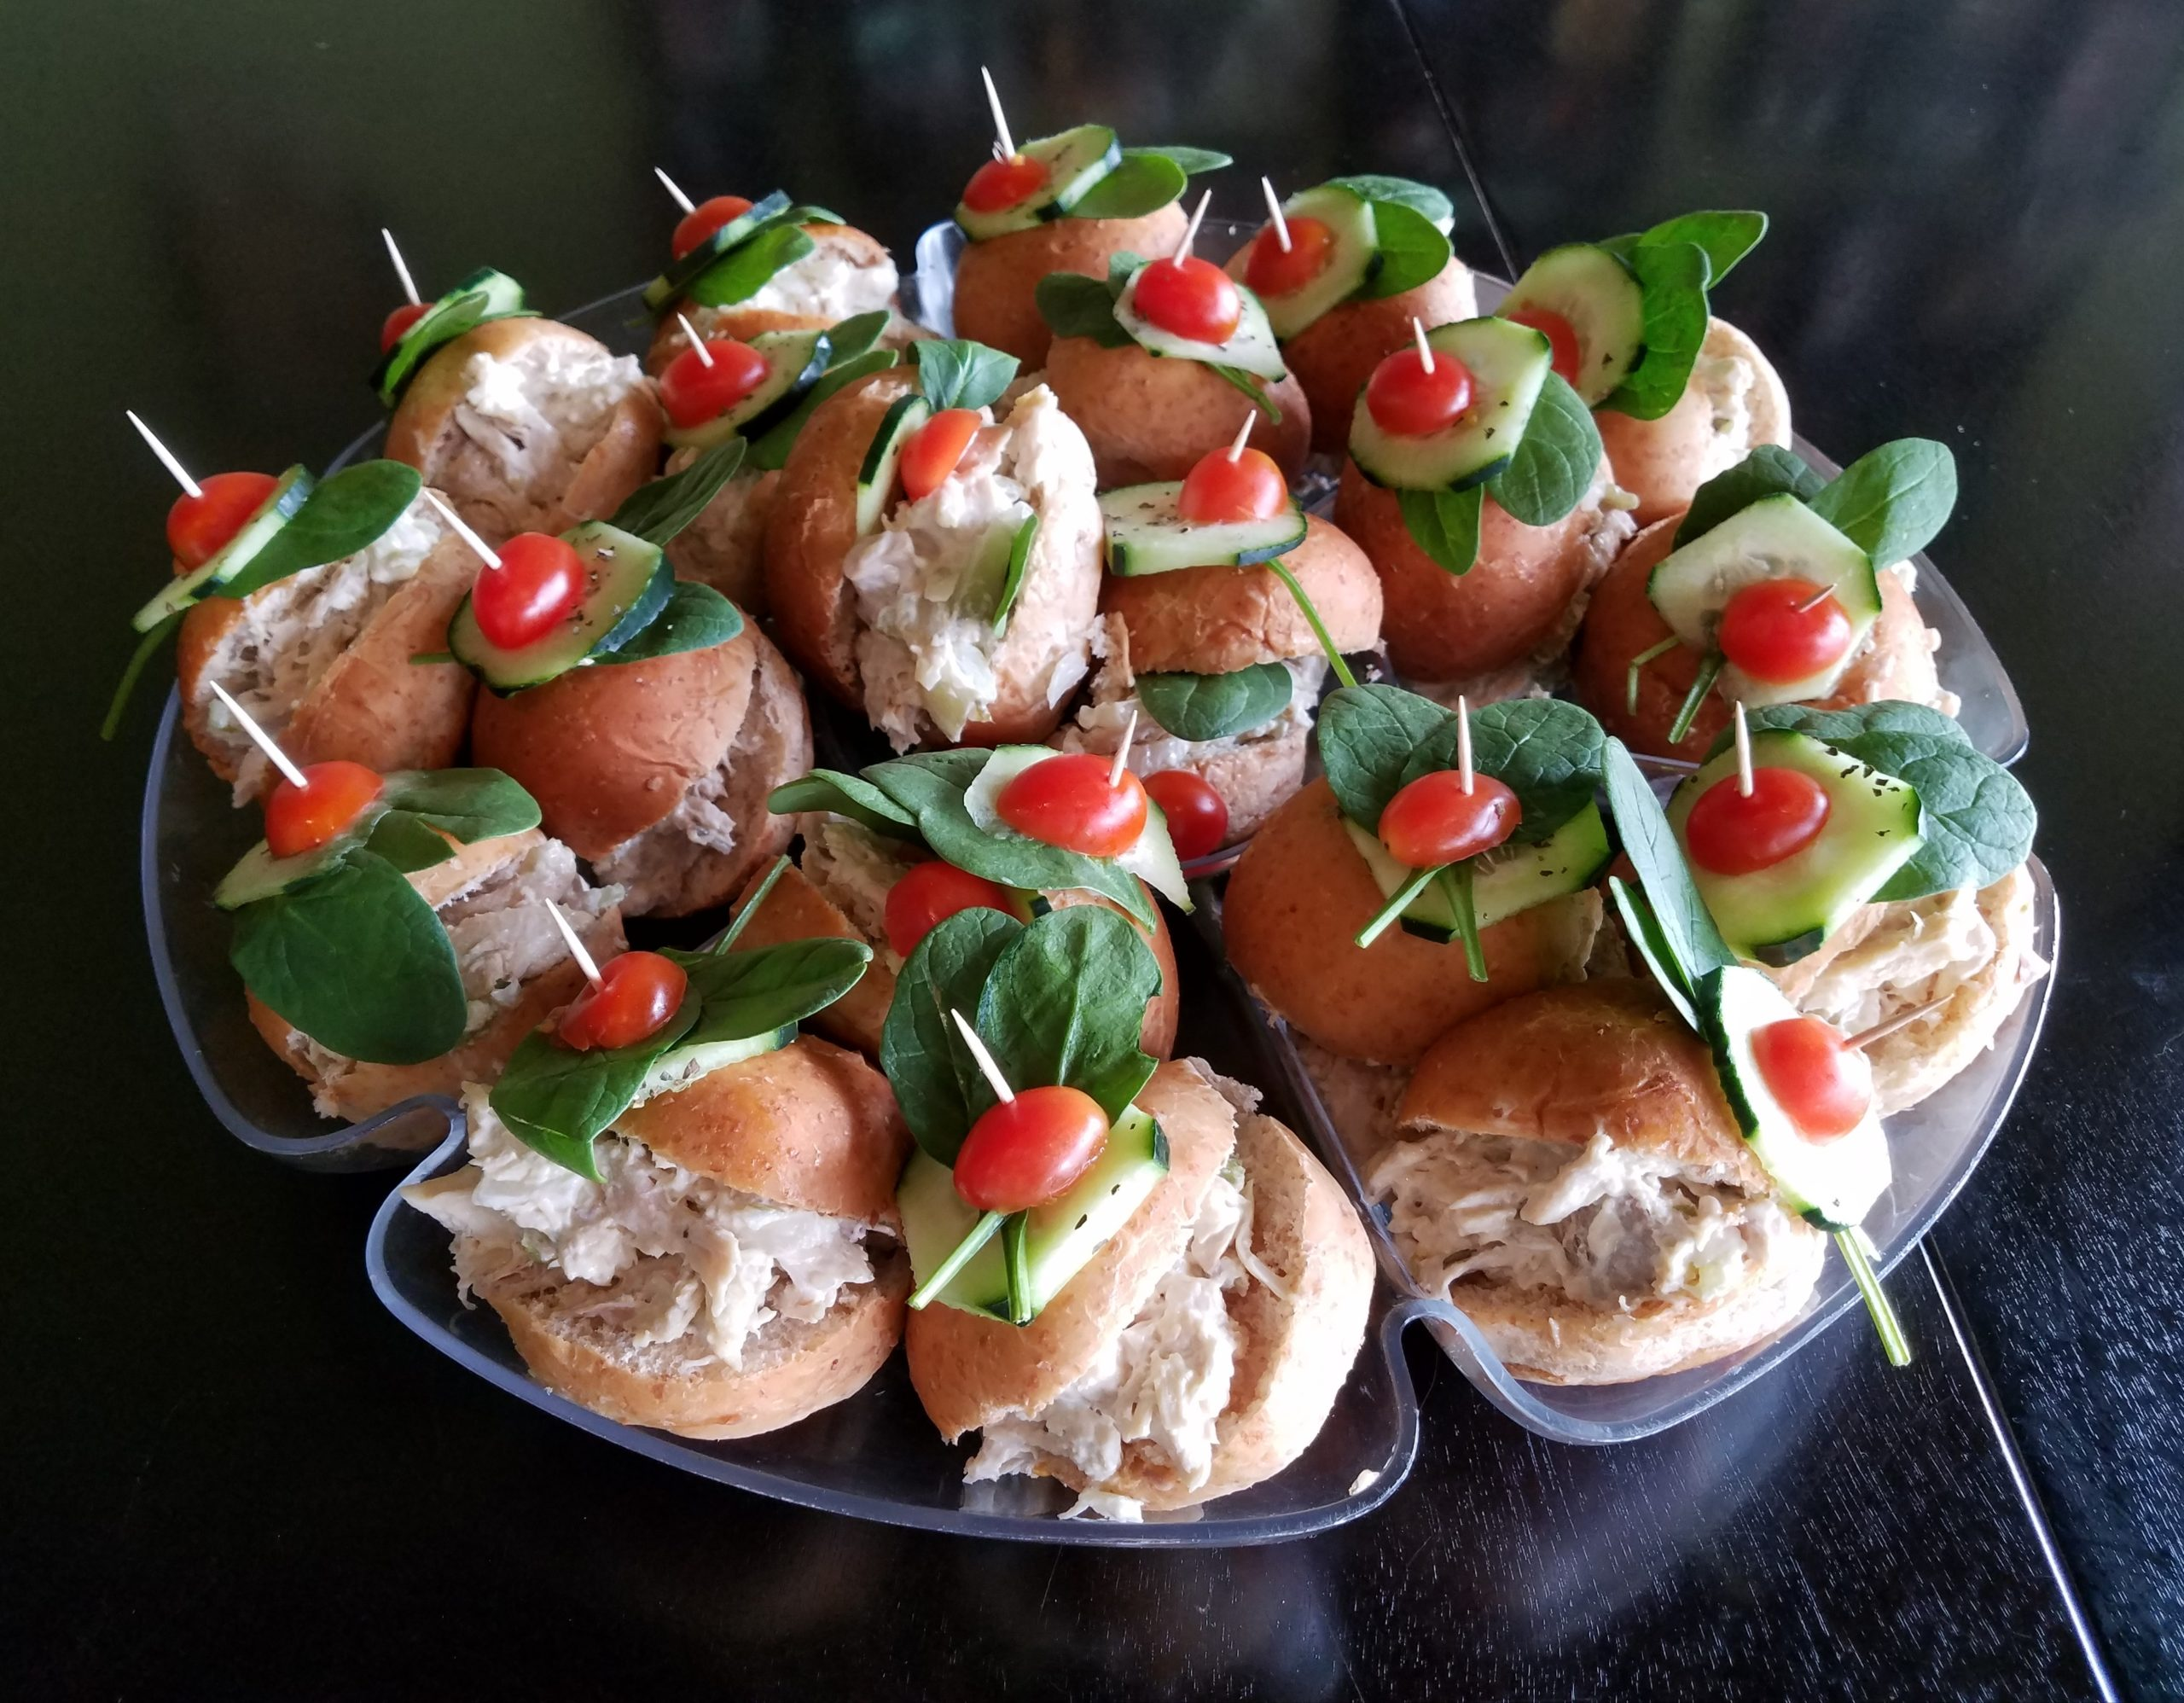 Catering sliders tray